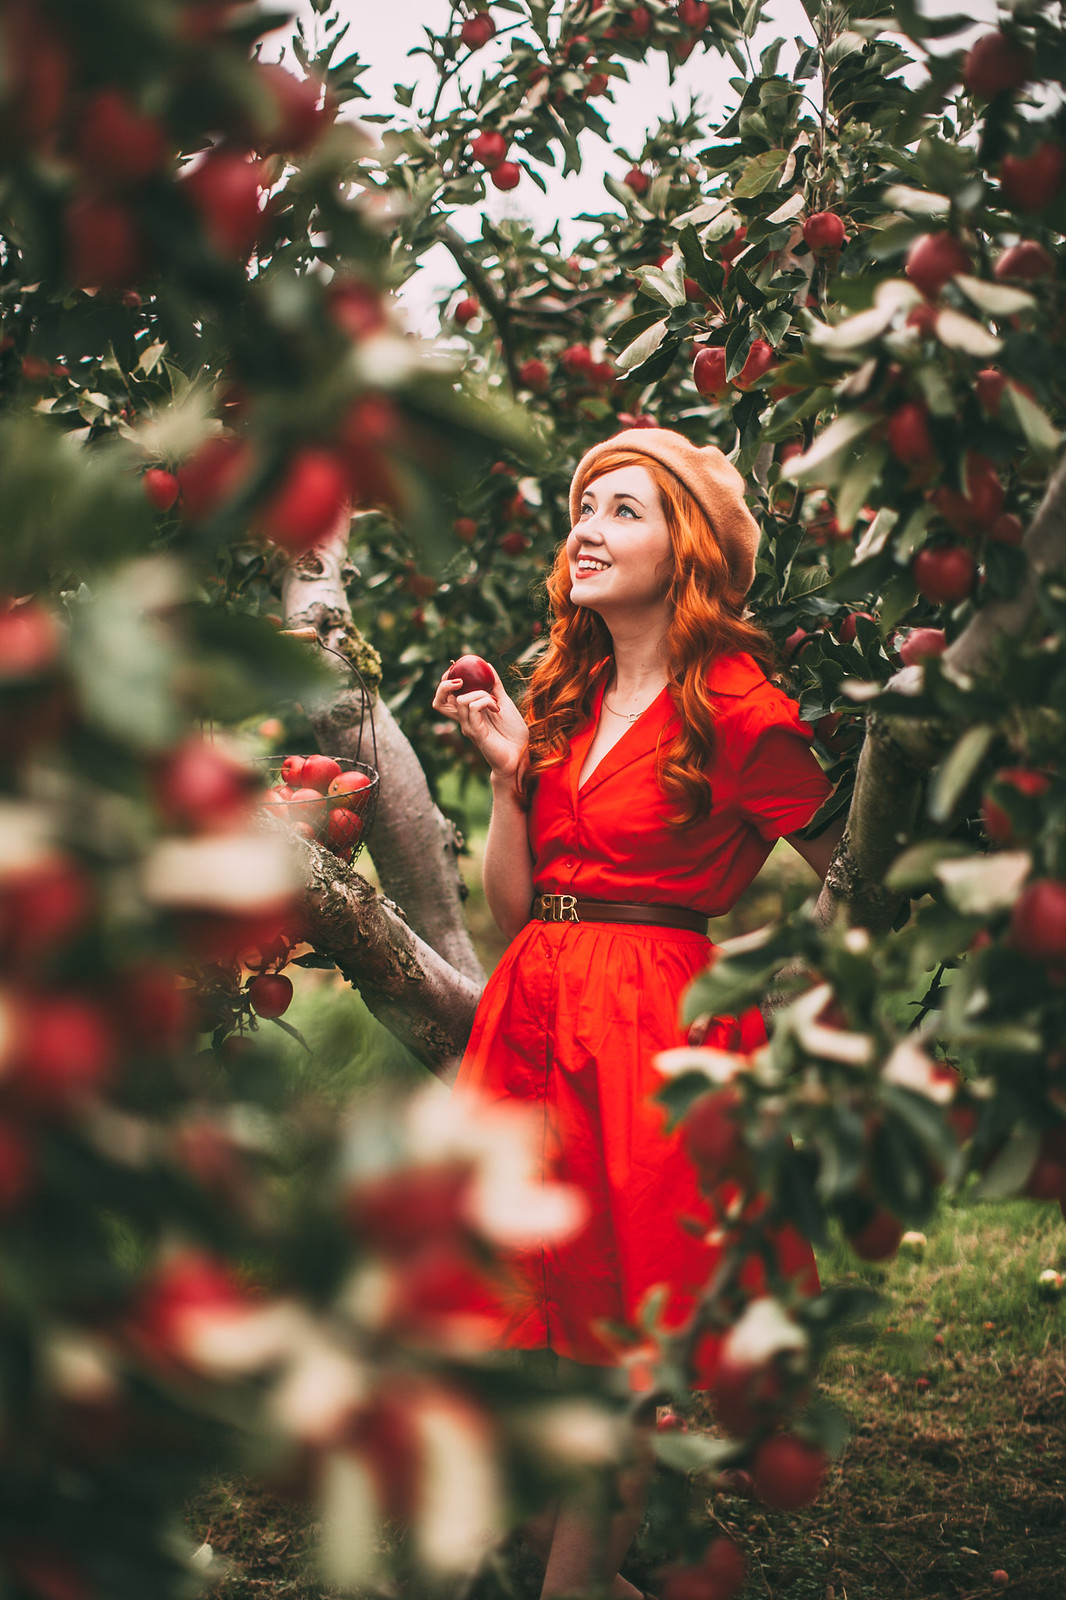 red apples-31